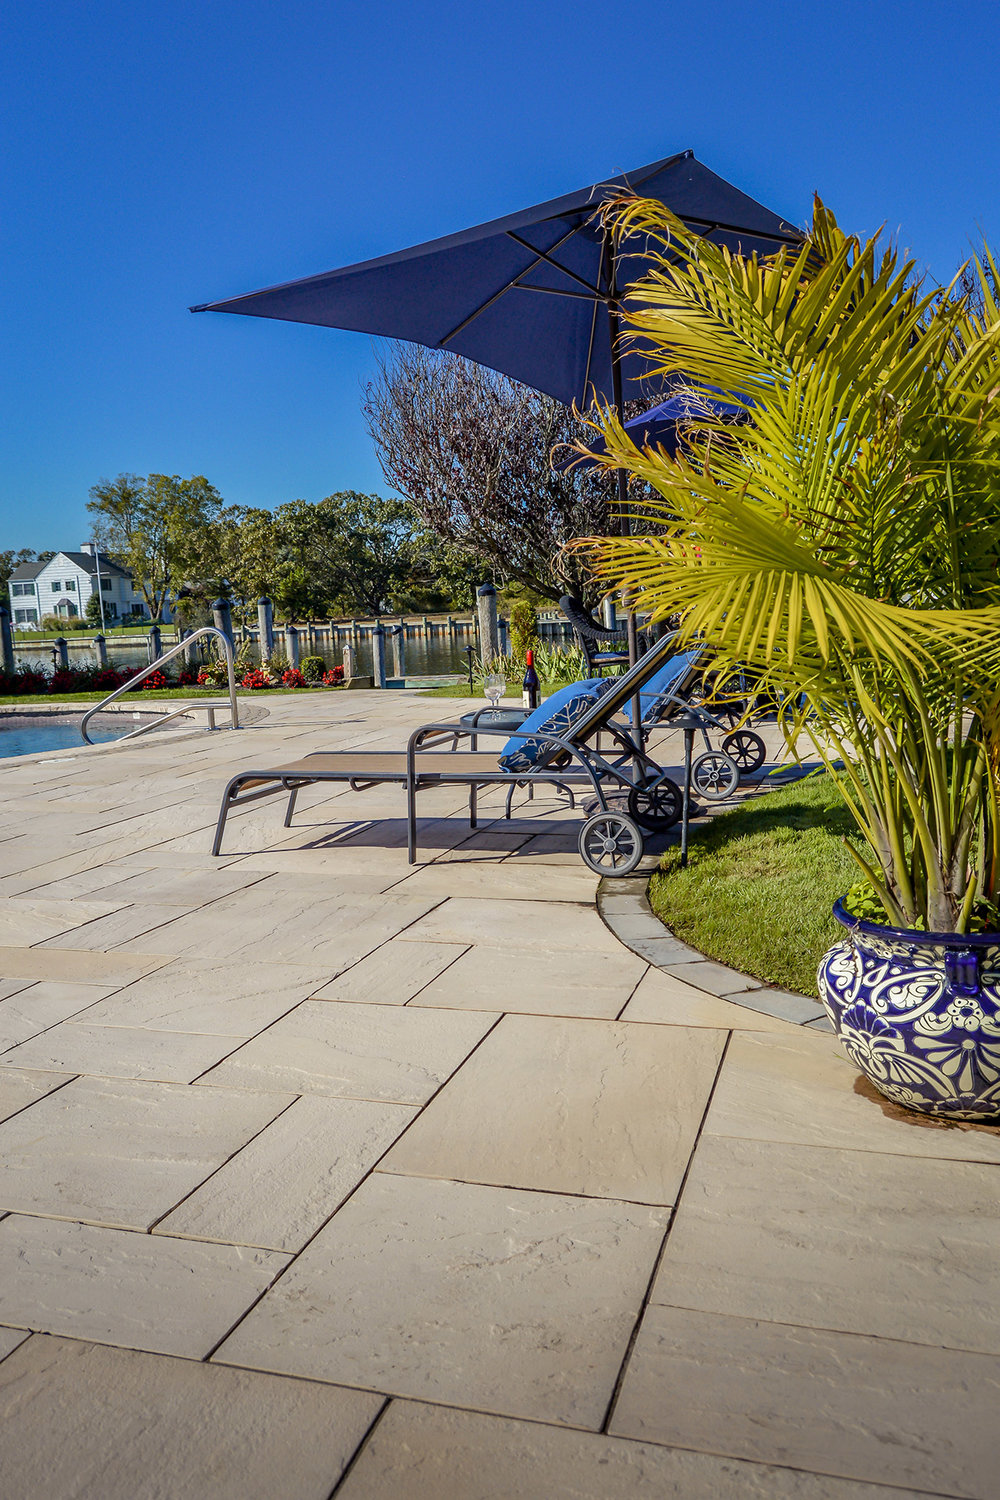 Smithtown, NY patio with sunbeds